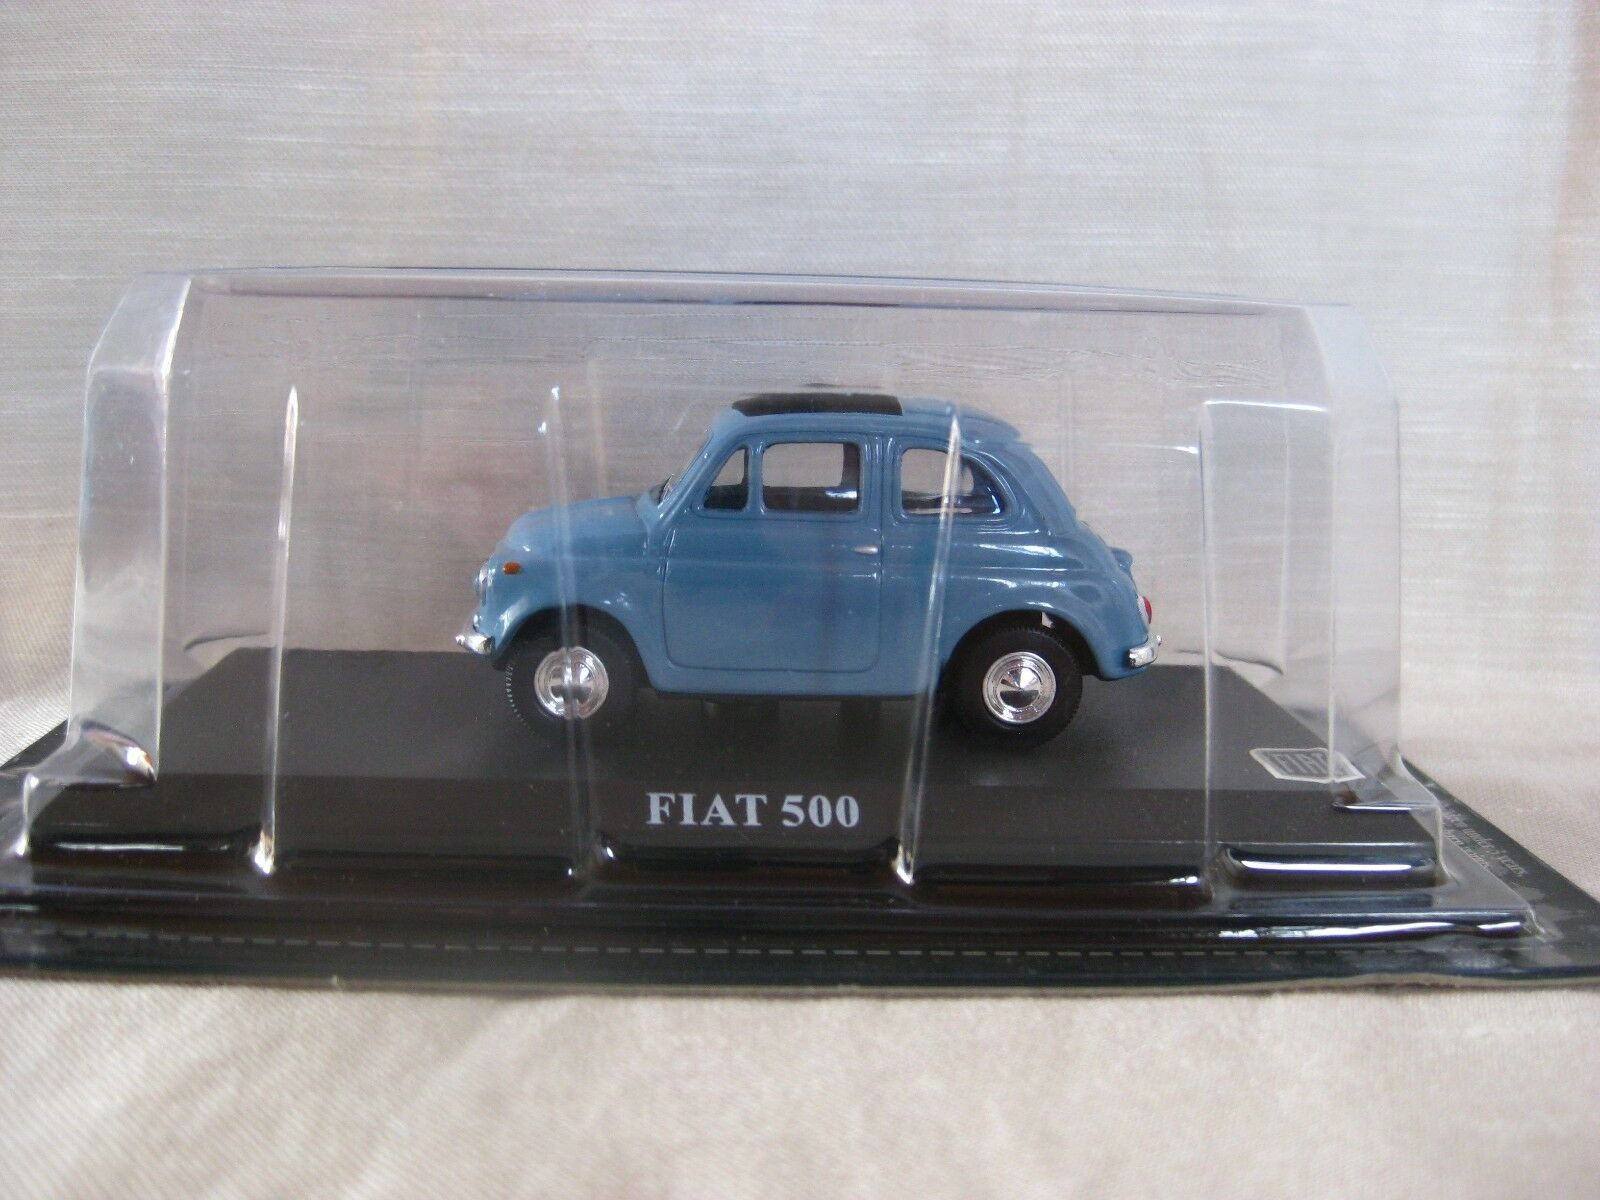 FIAT 500 Light blu 1 43 Die cast model 20th CENTURY GREAT CARS COLLECTION